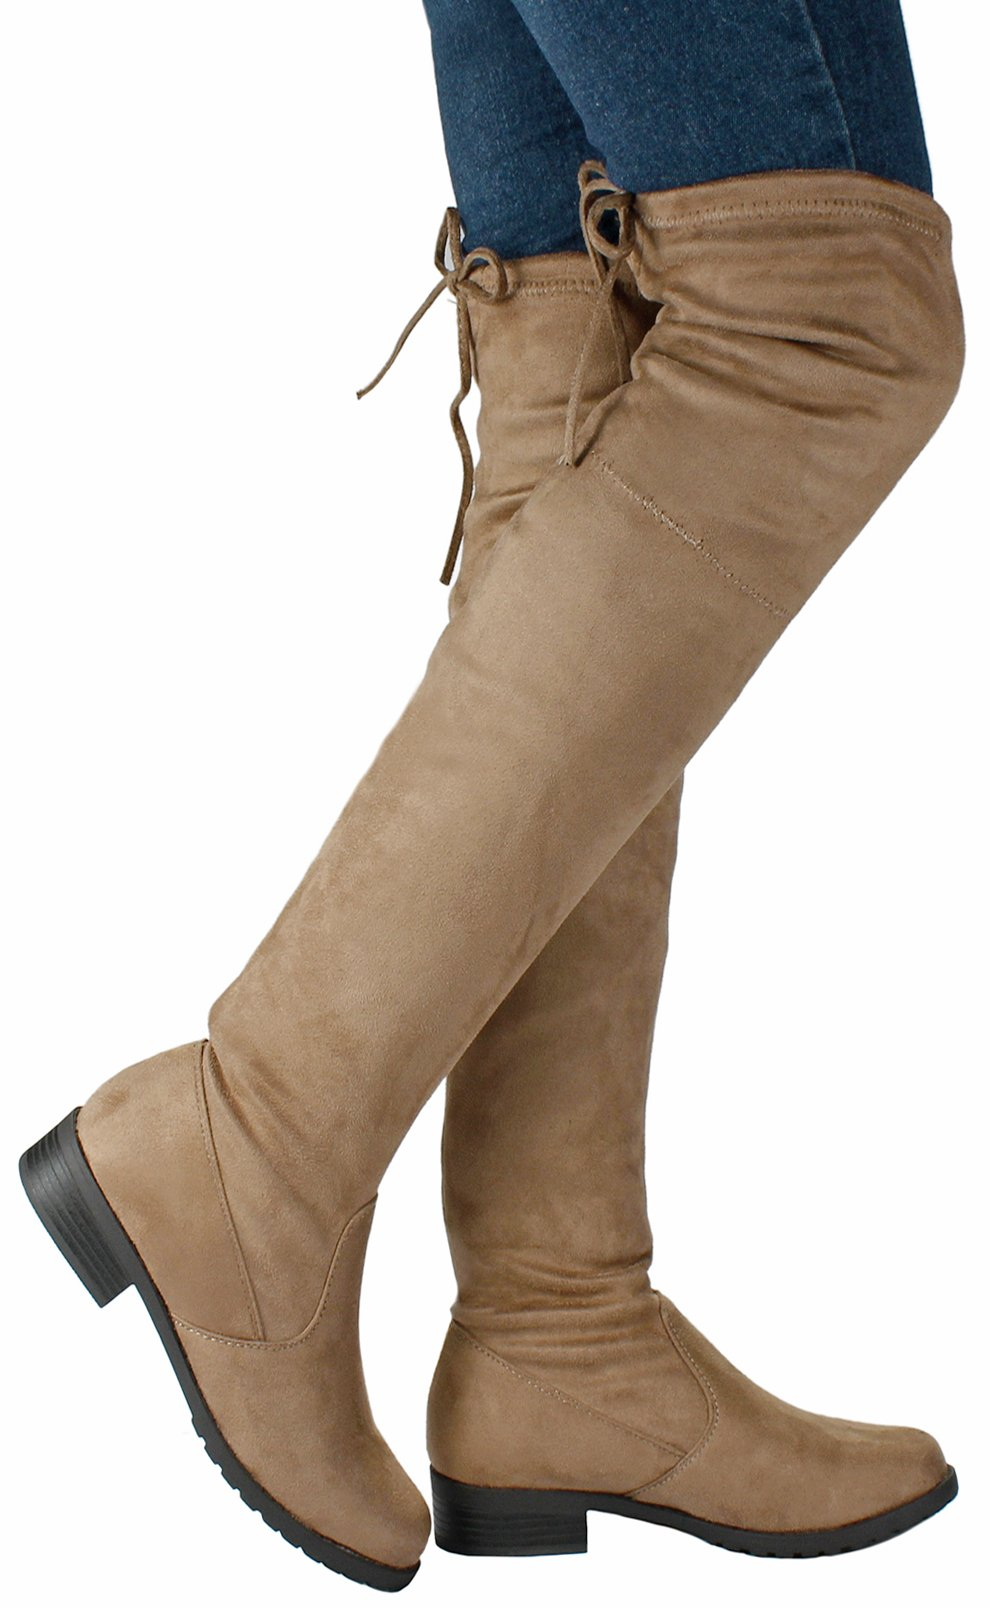 JJF Shoes Women Jalen Taupe Fashion Slouchy Round Toe Faux Suede Slanted Cuff Over The Knee Boots-8.5